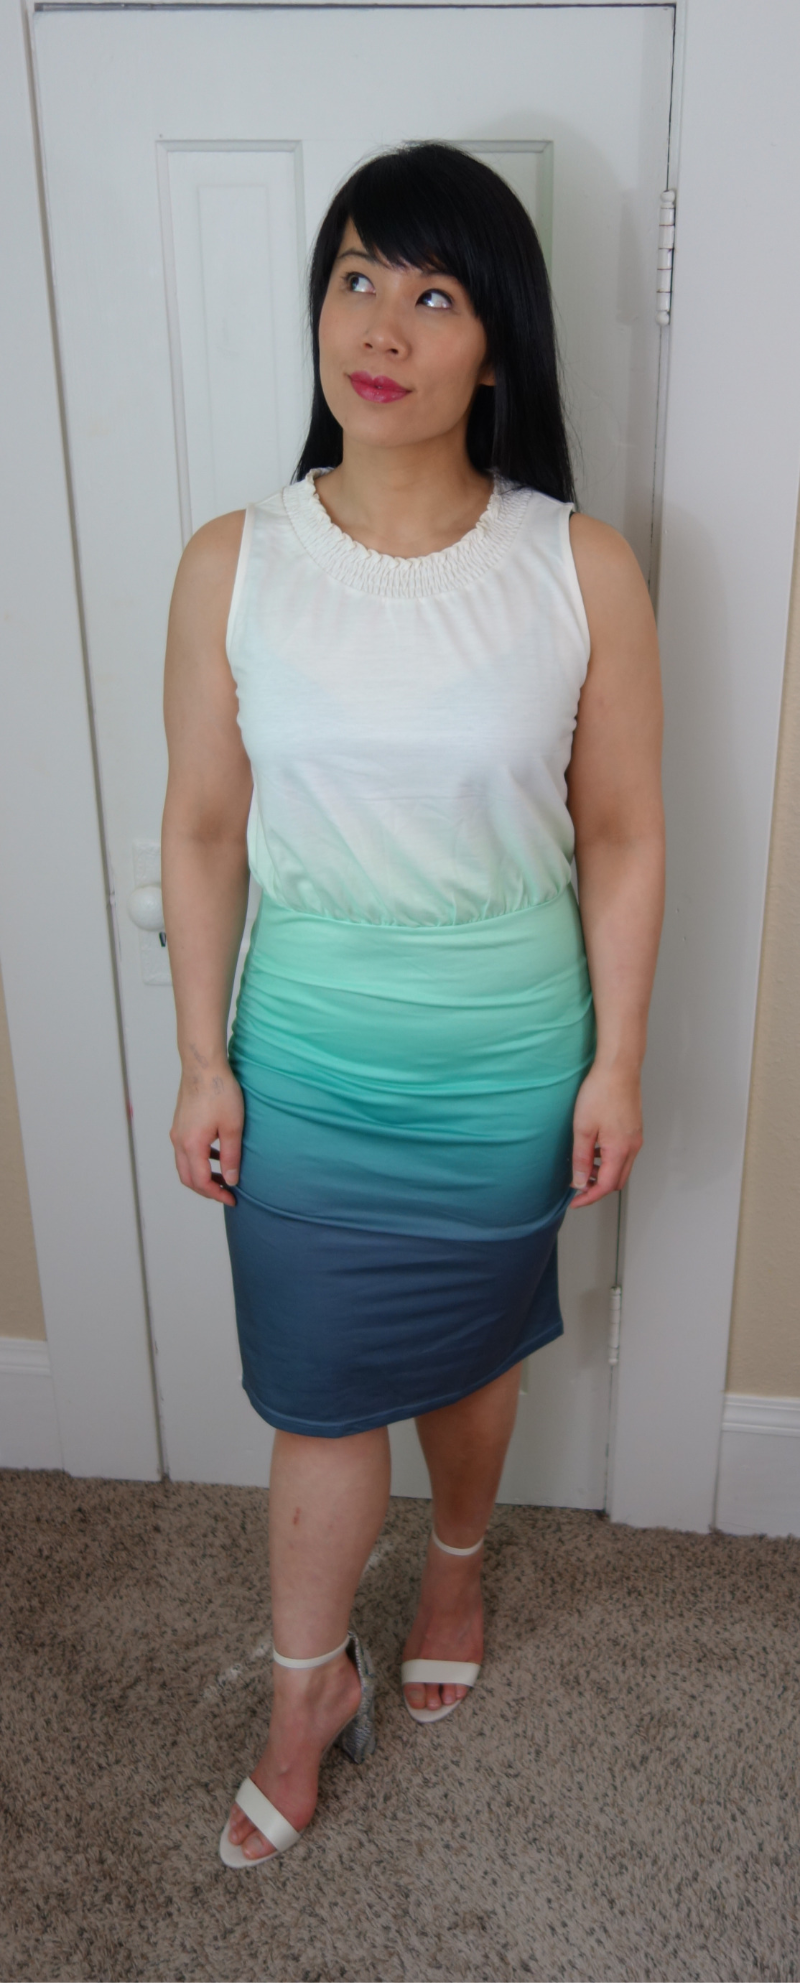 Kat wearing an ombre dress